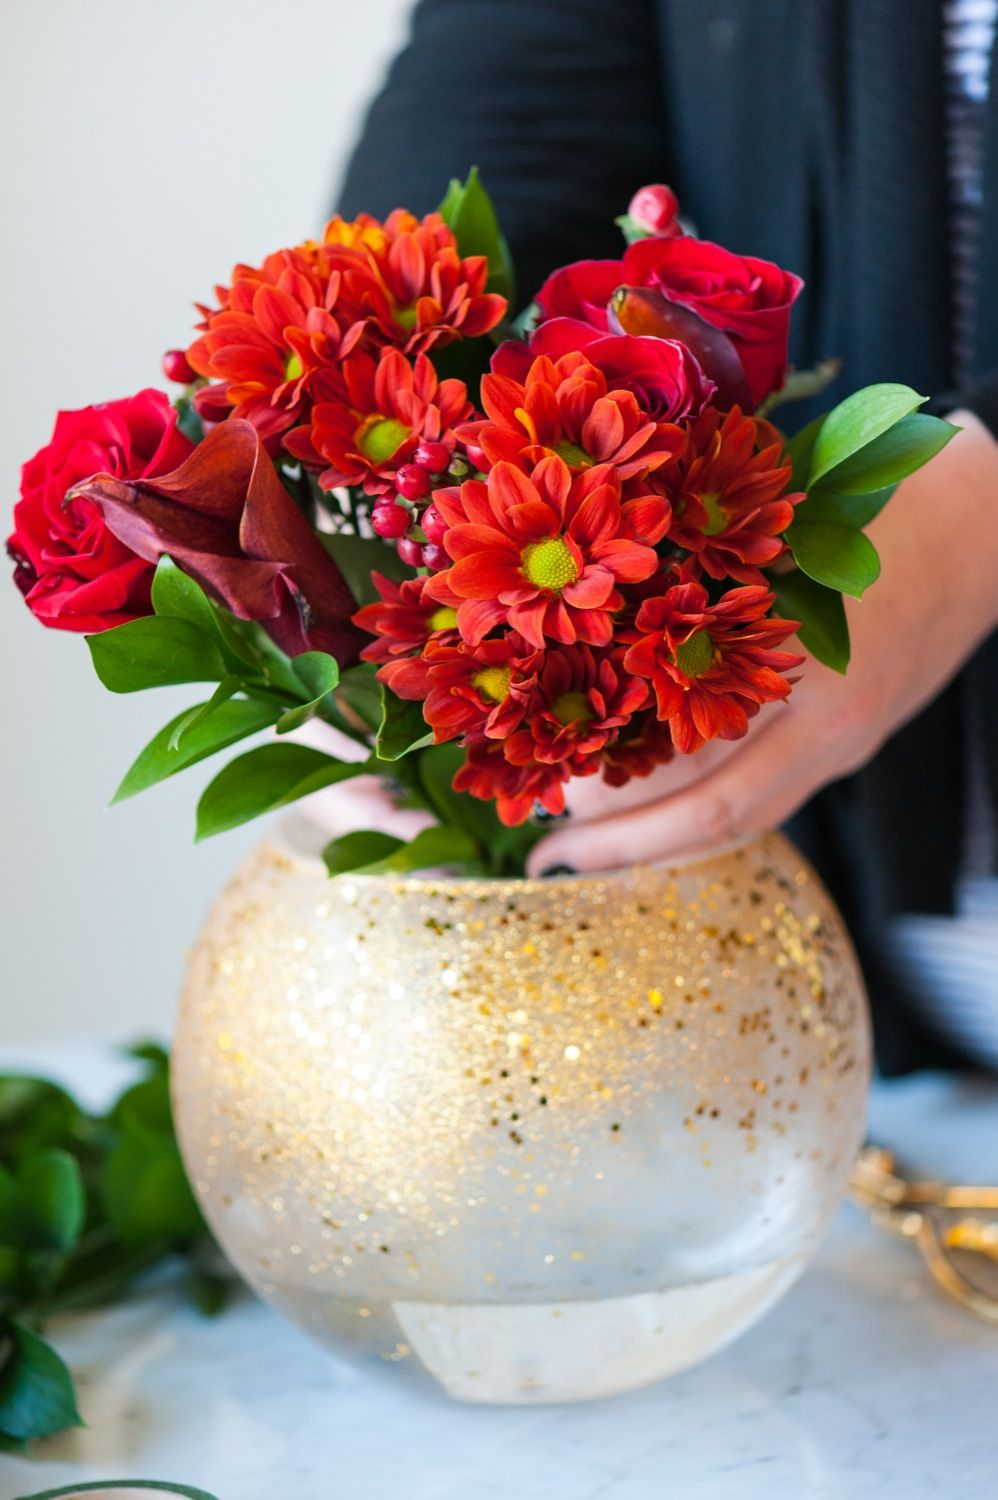 Flower vase with fish - Diy Christmas Centerpiece Fish Bowl By Cydconverse